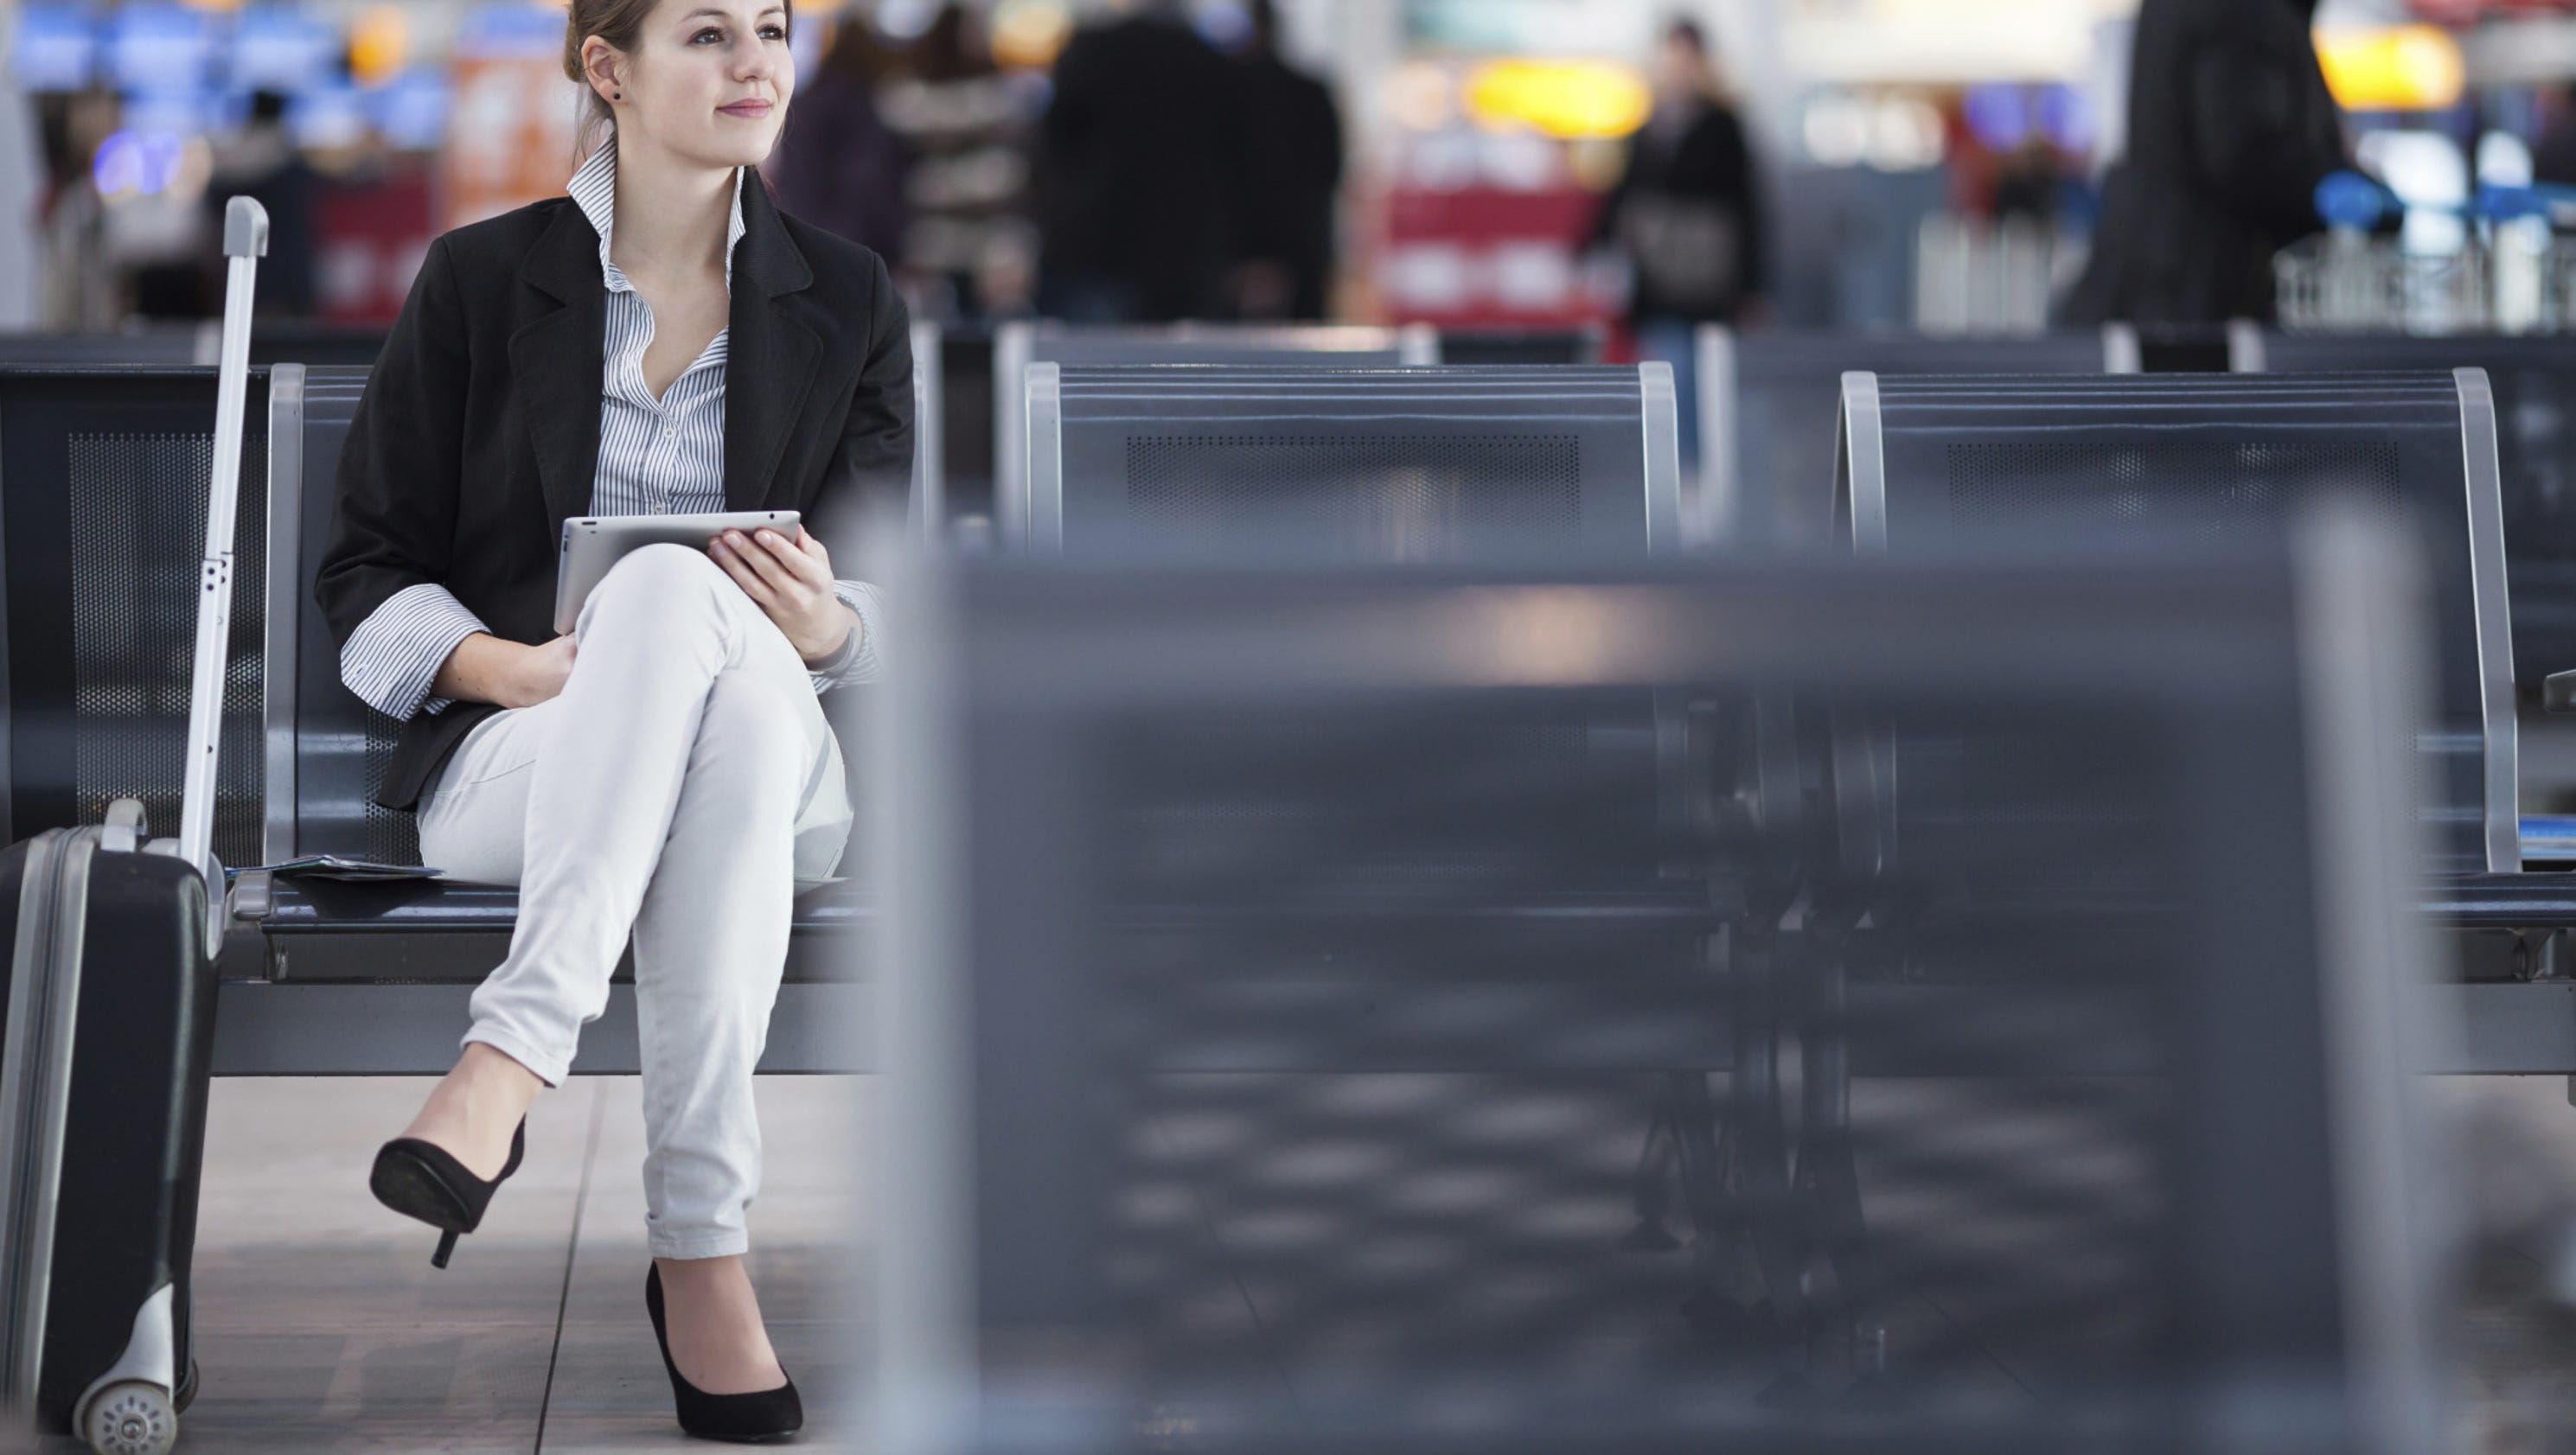 Best Readers Choice Best Airport For A Layover - The 15 best airports for a layover